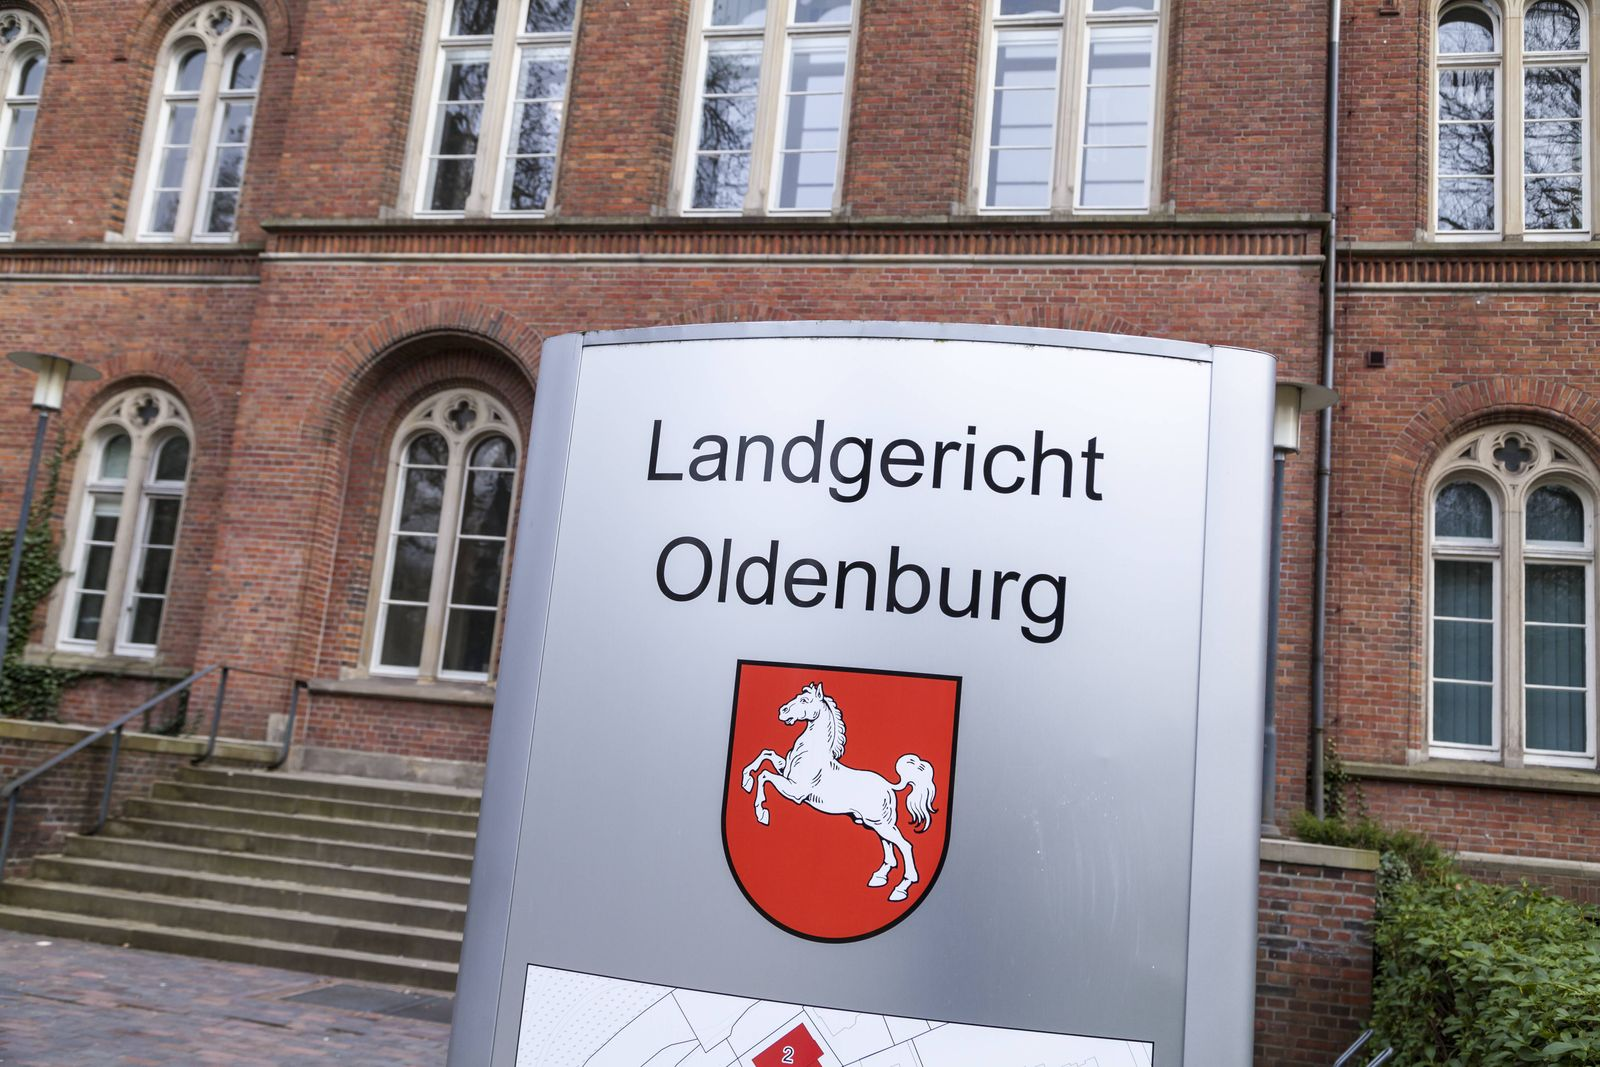 Landgericht in Oldenburg Niedersachsen *** Regional court in Oldenburg Lower Saxony